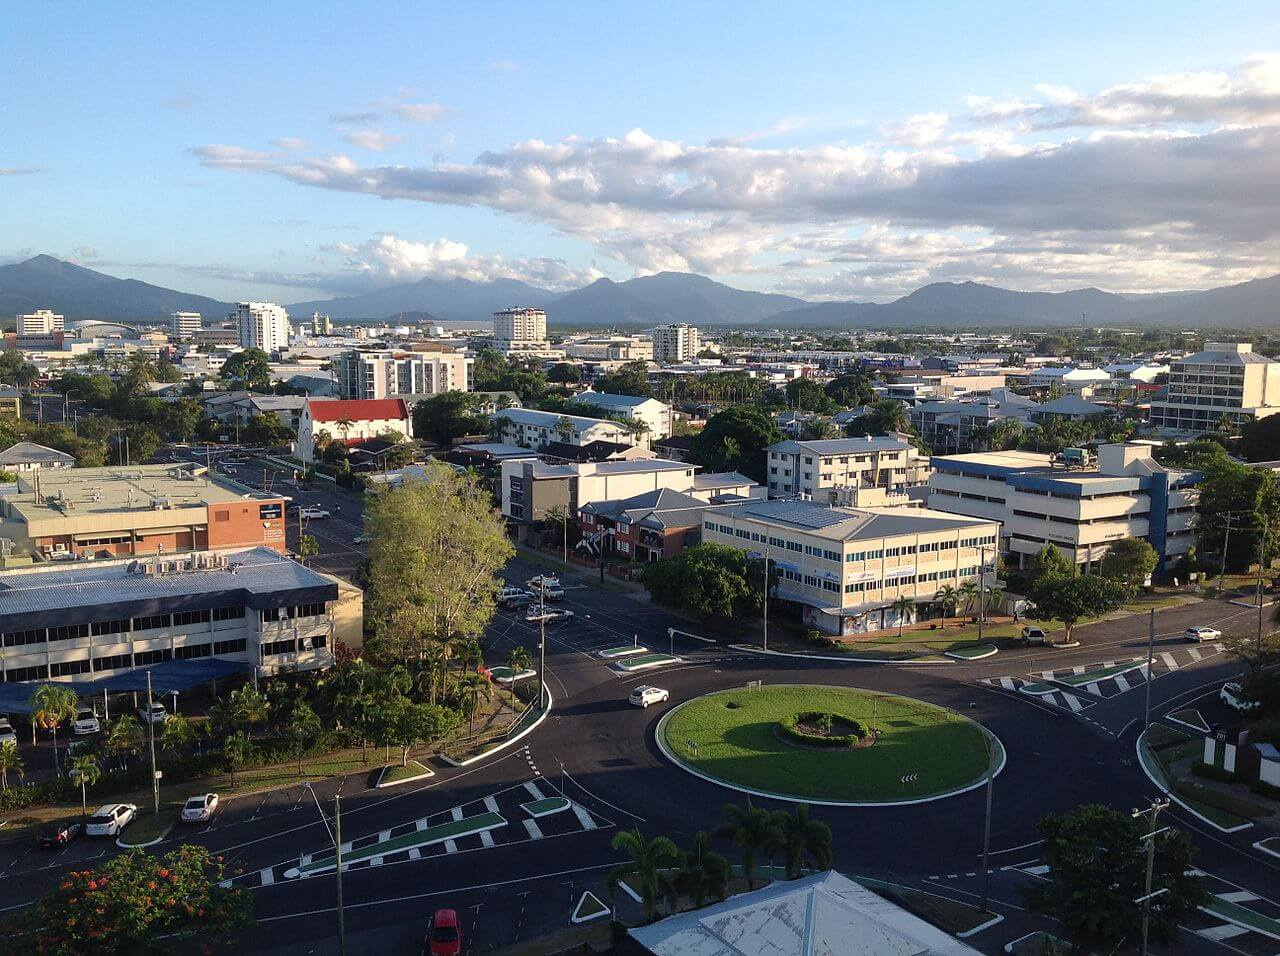 CBD of Cairns in Australia, showing silhouettes of hills in background